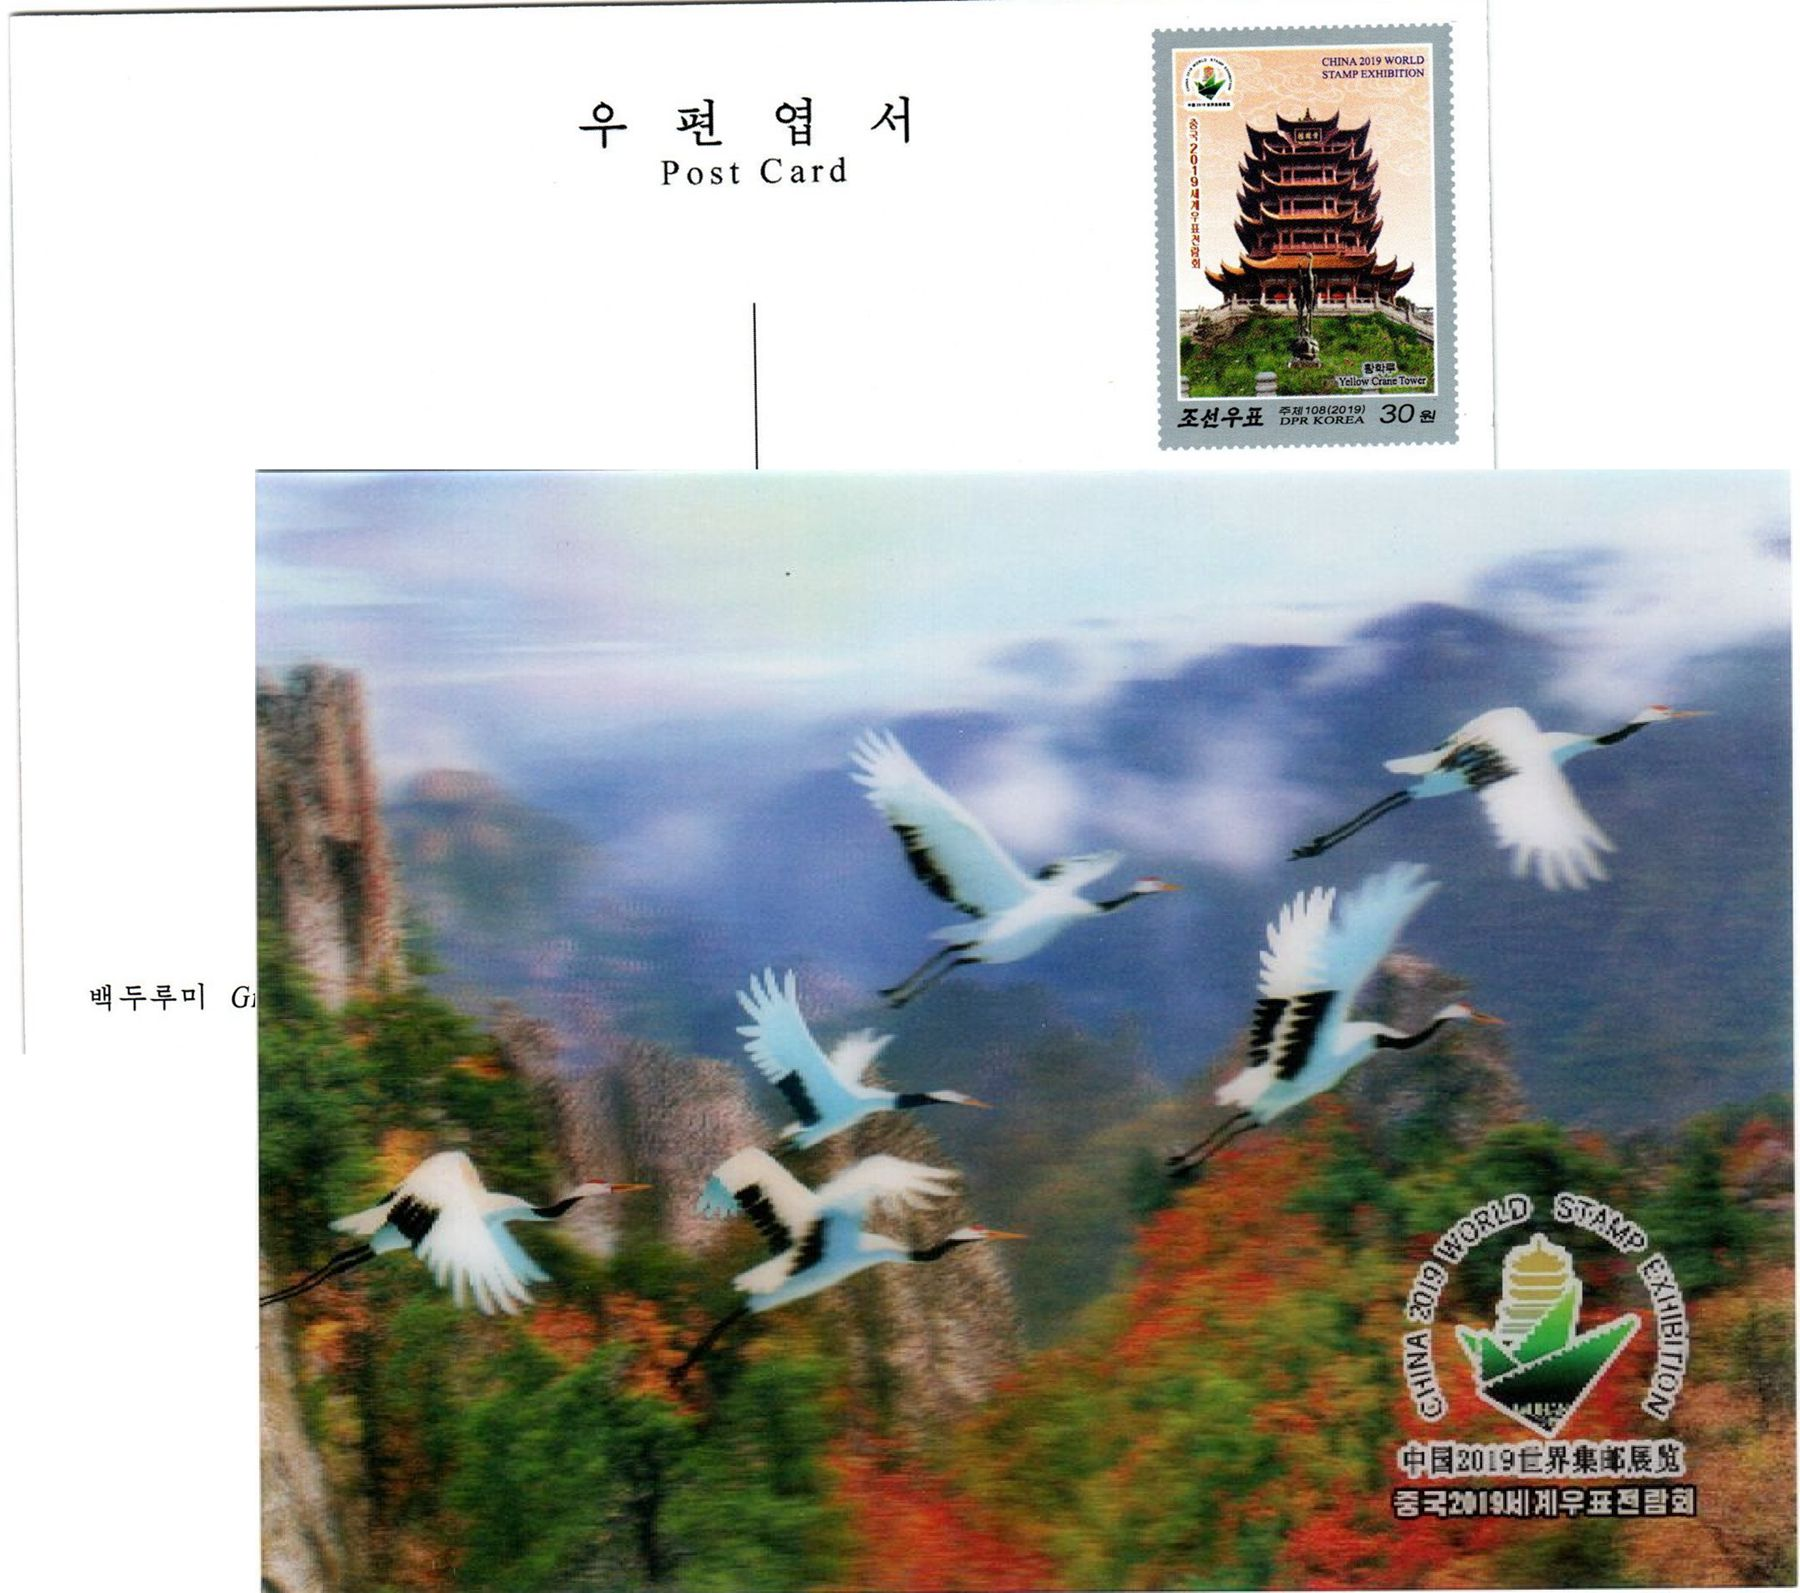 "L9400, Korea ""China 2019 World Stamp Exhibition"", 3D Postal Card"